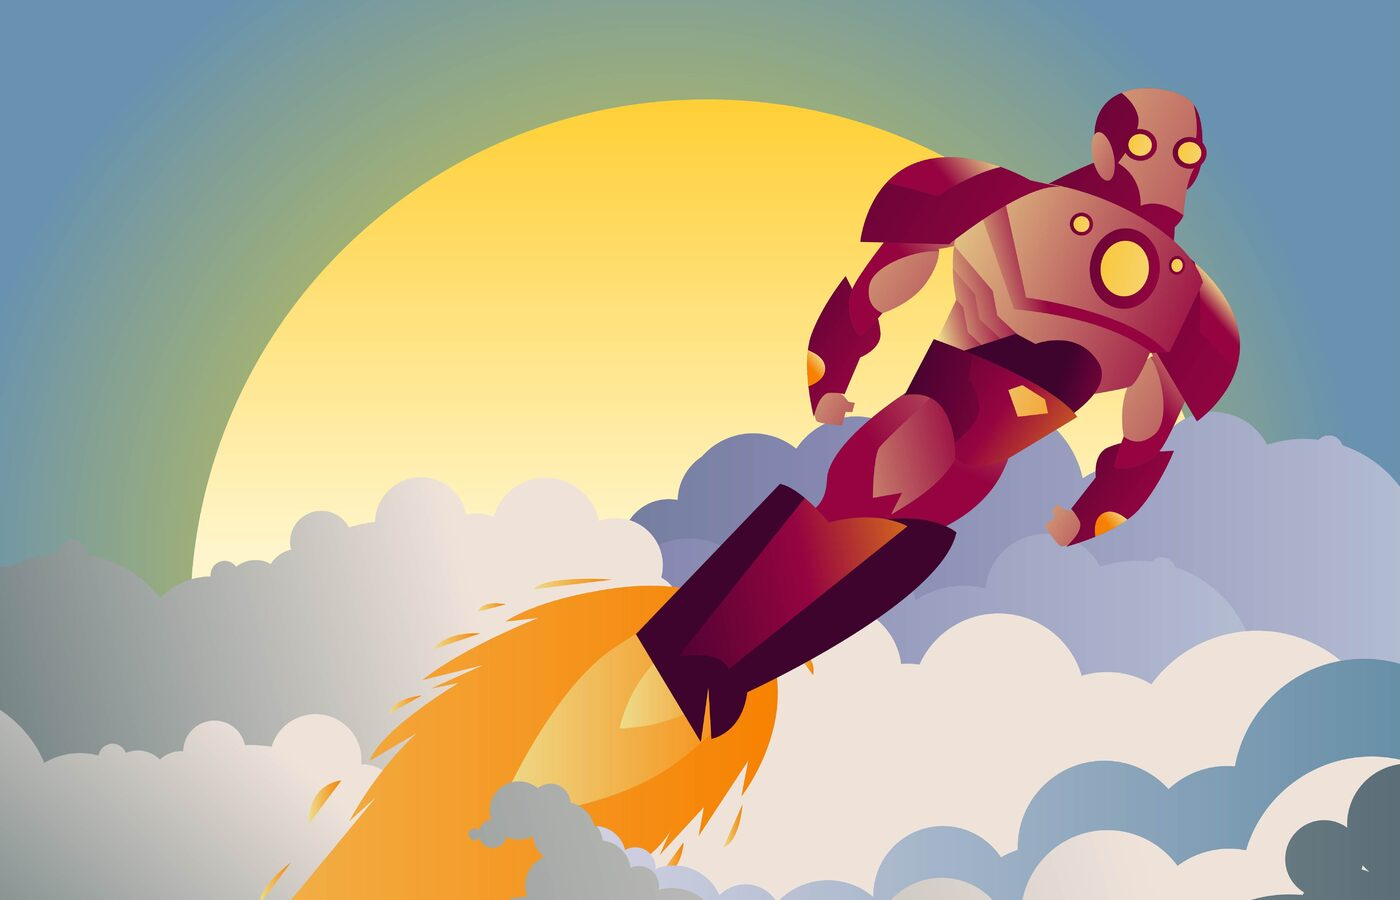 1400x900 Iron Man Sunset Clouds Minimalist 1400x900 Resolution Hd 4k